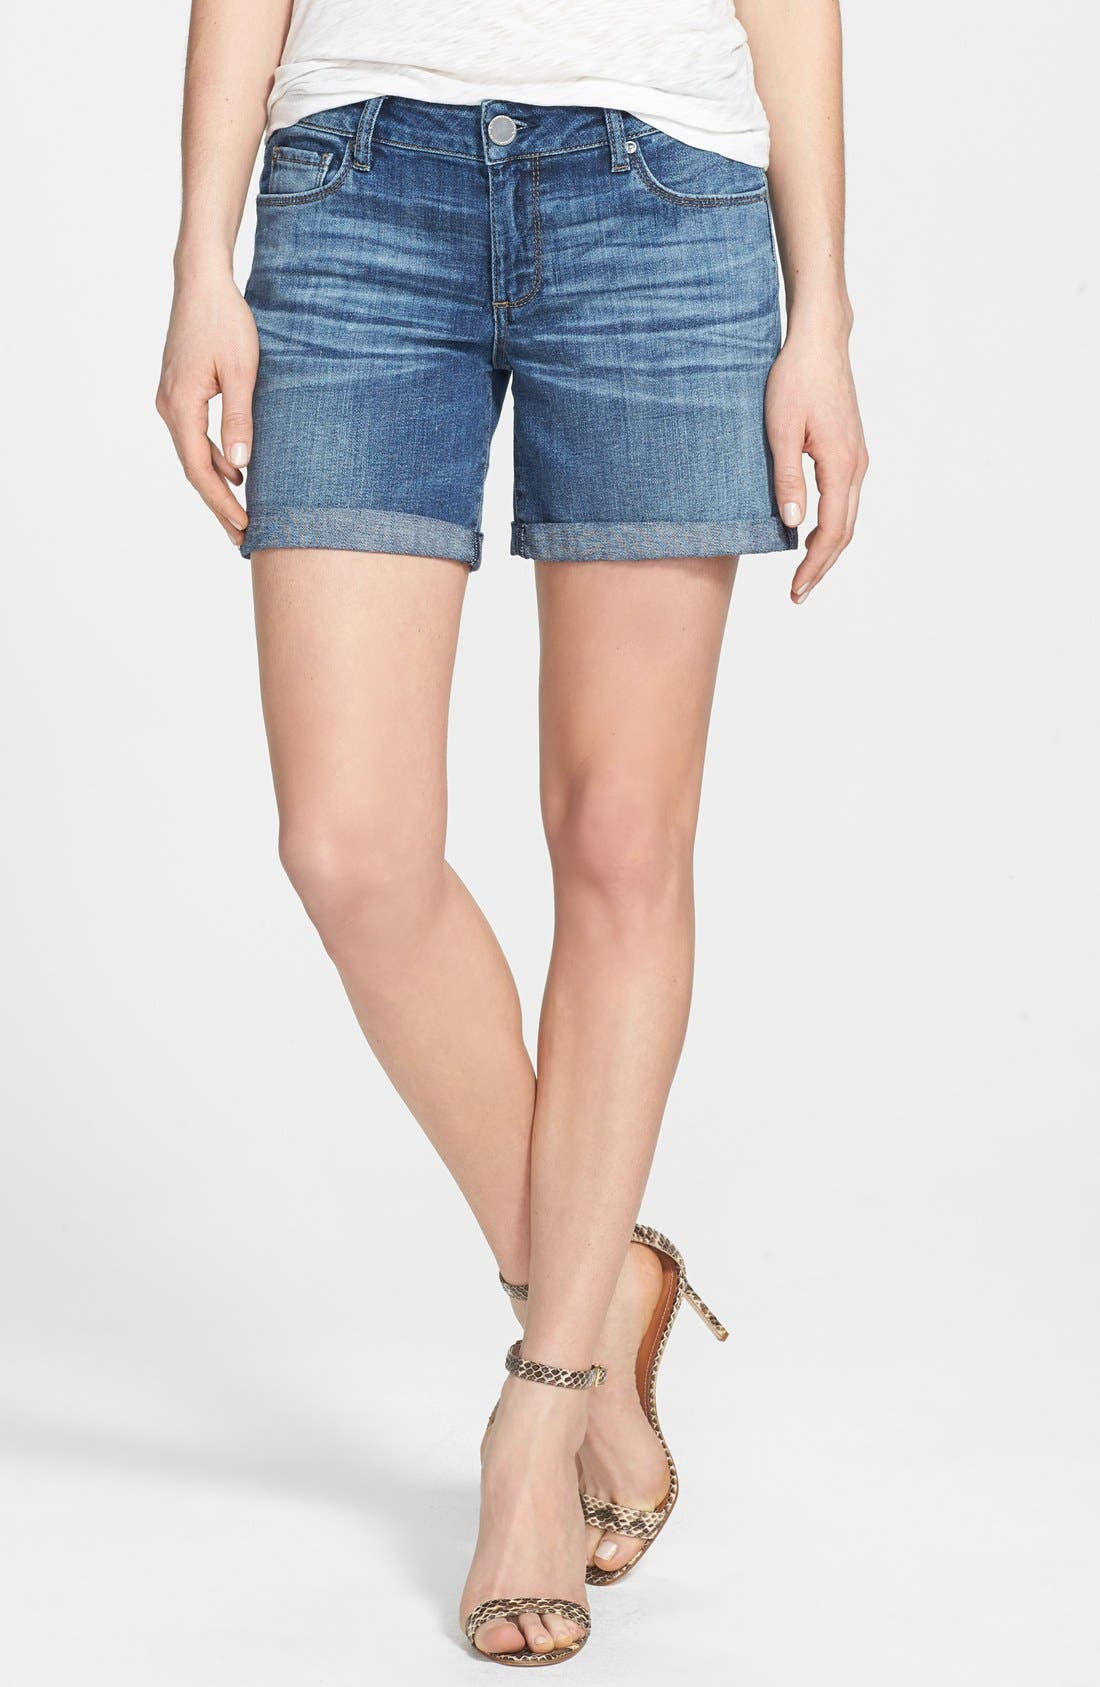 Alternate Image 1 Selected - DL1961 'Karlie' Boyfriend Denim Shorts